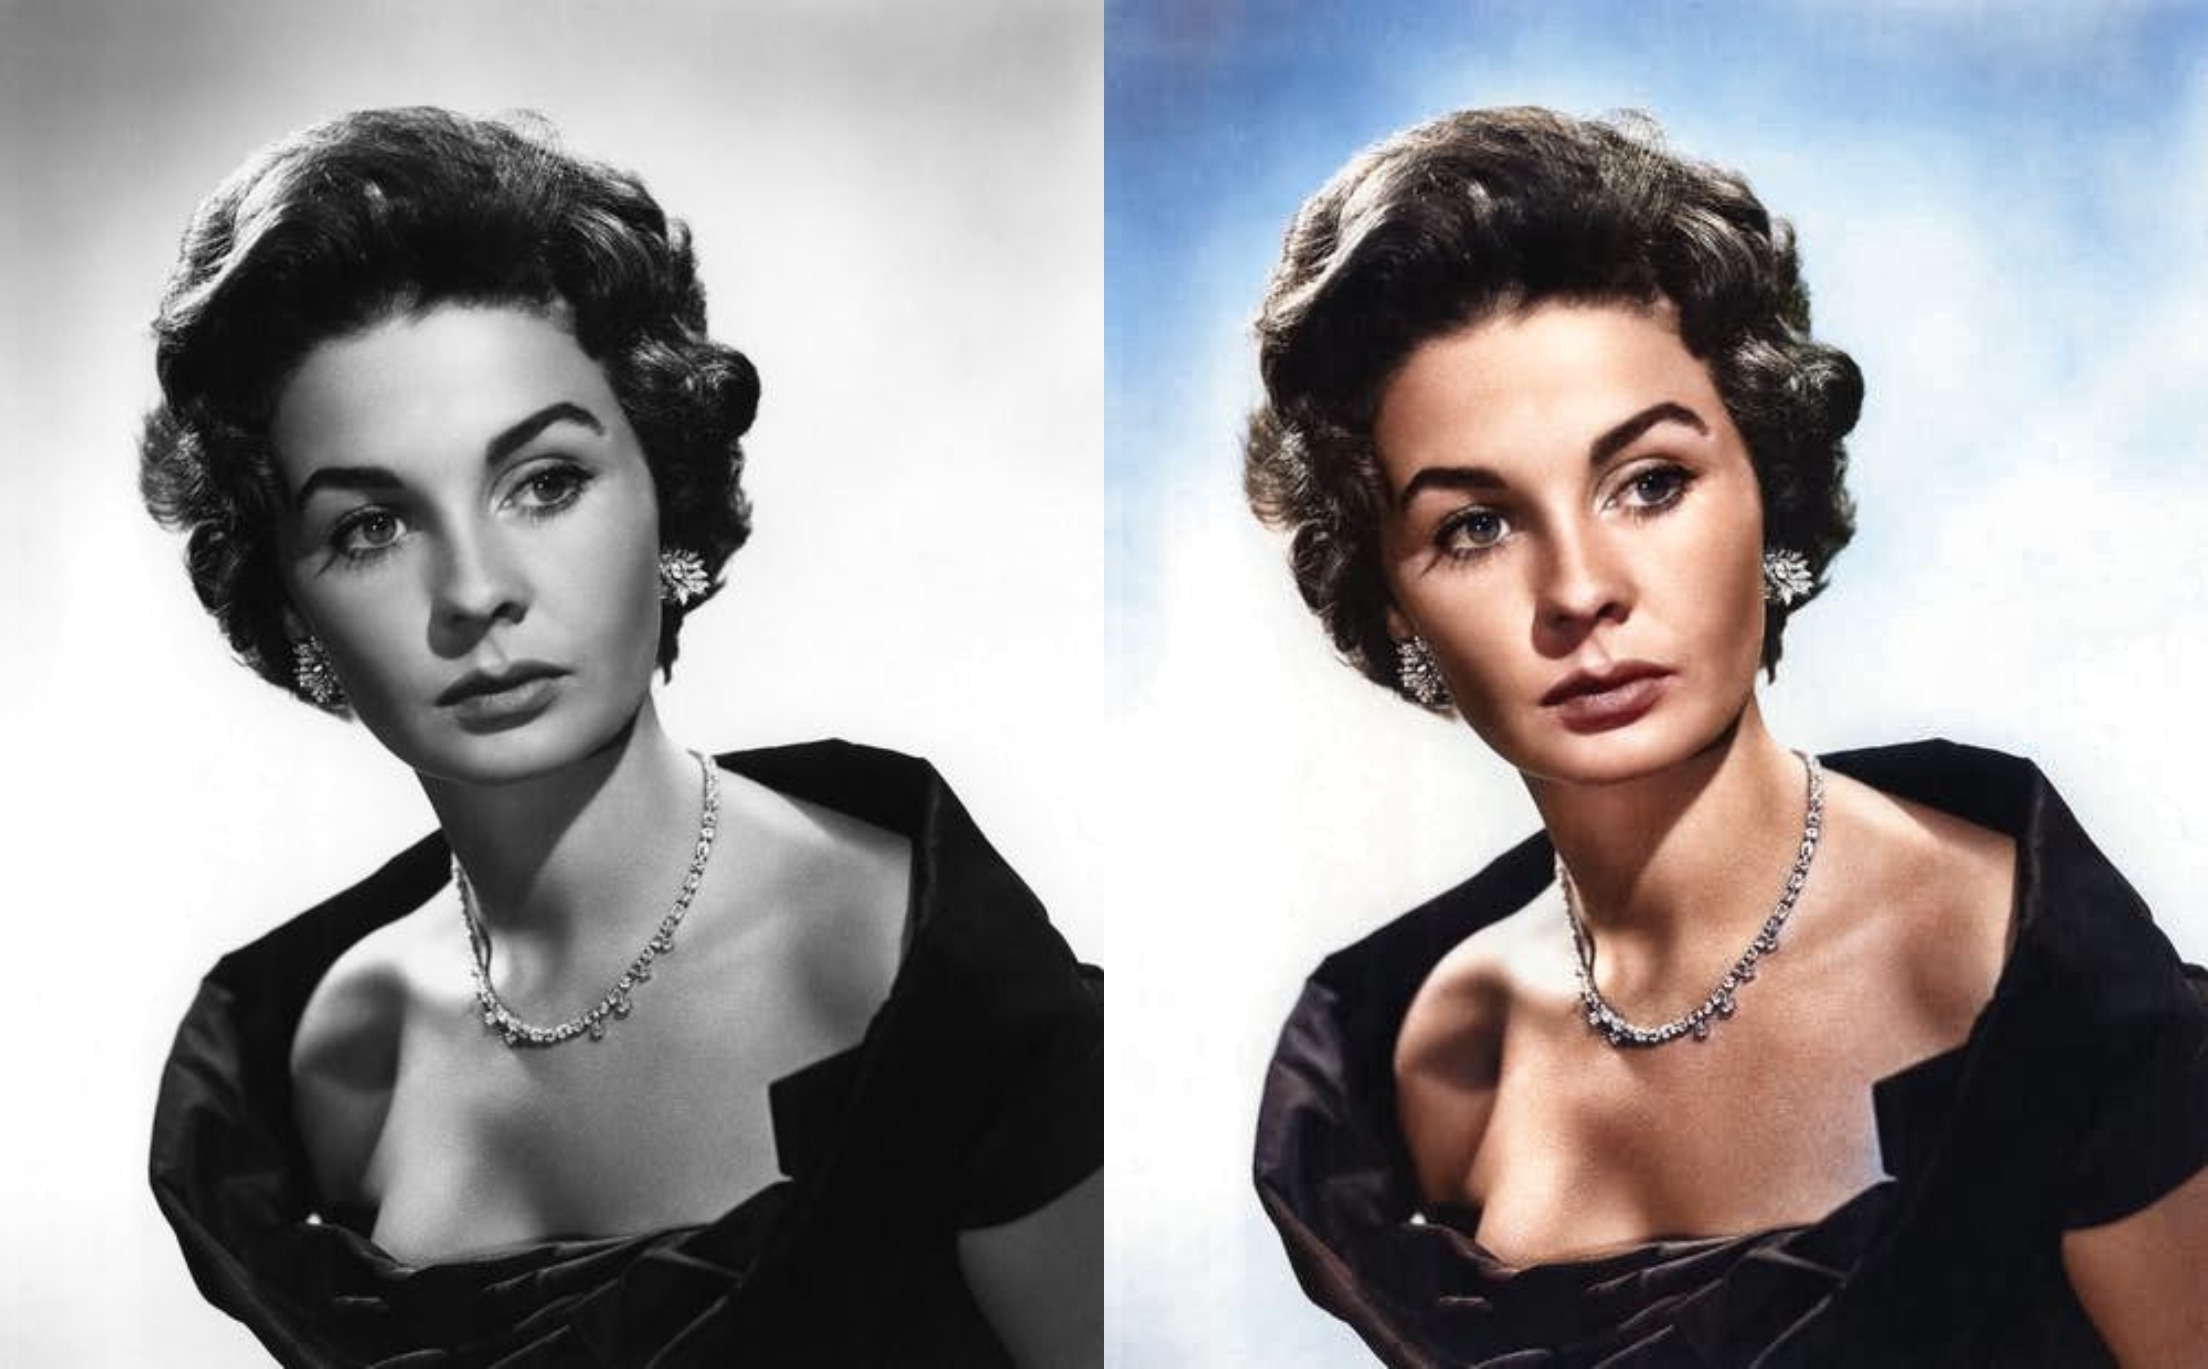 i will Color your black and white photos